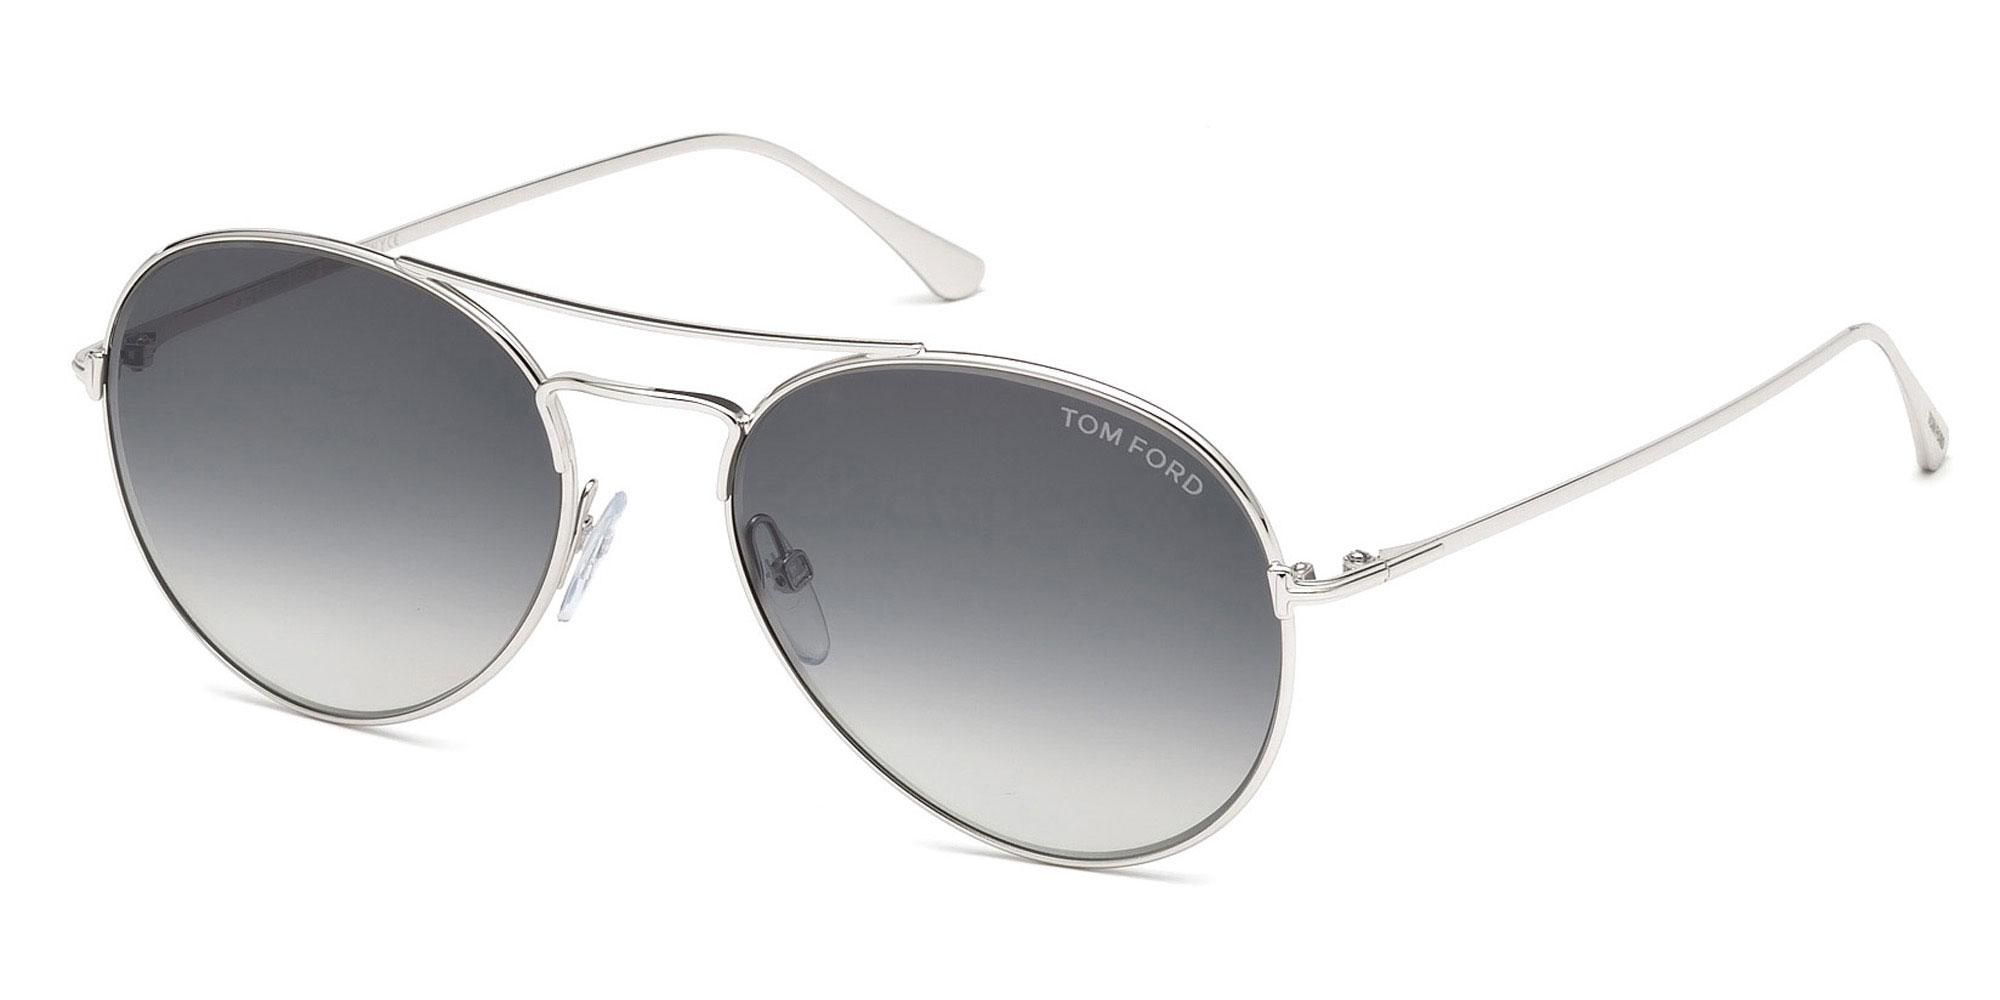 18B FT0551 Sunglasses, Tom Ford